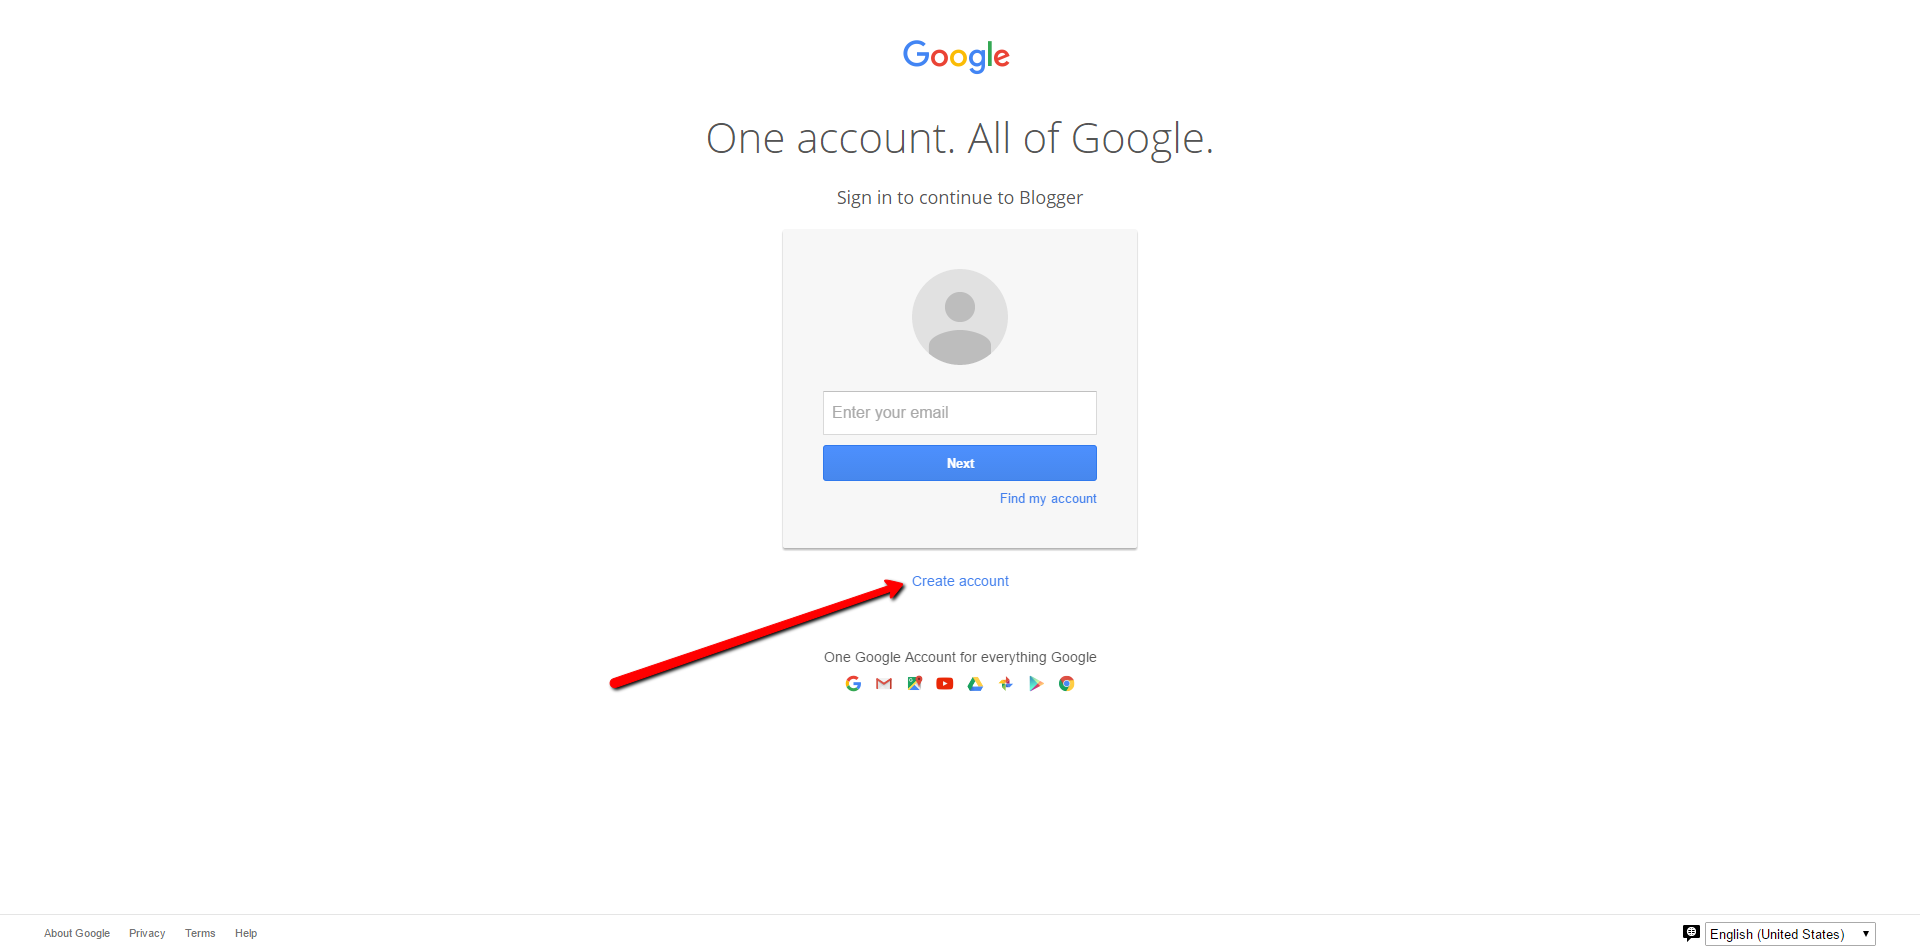 if you don't have a Google Account, create one